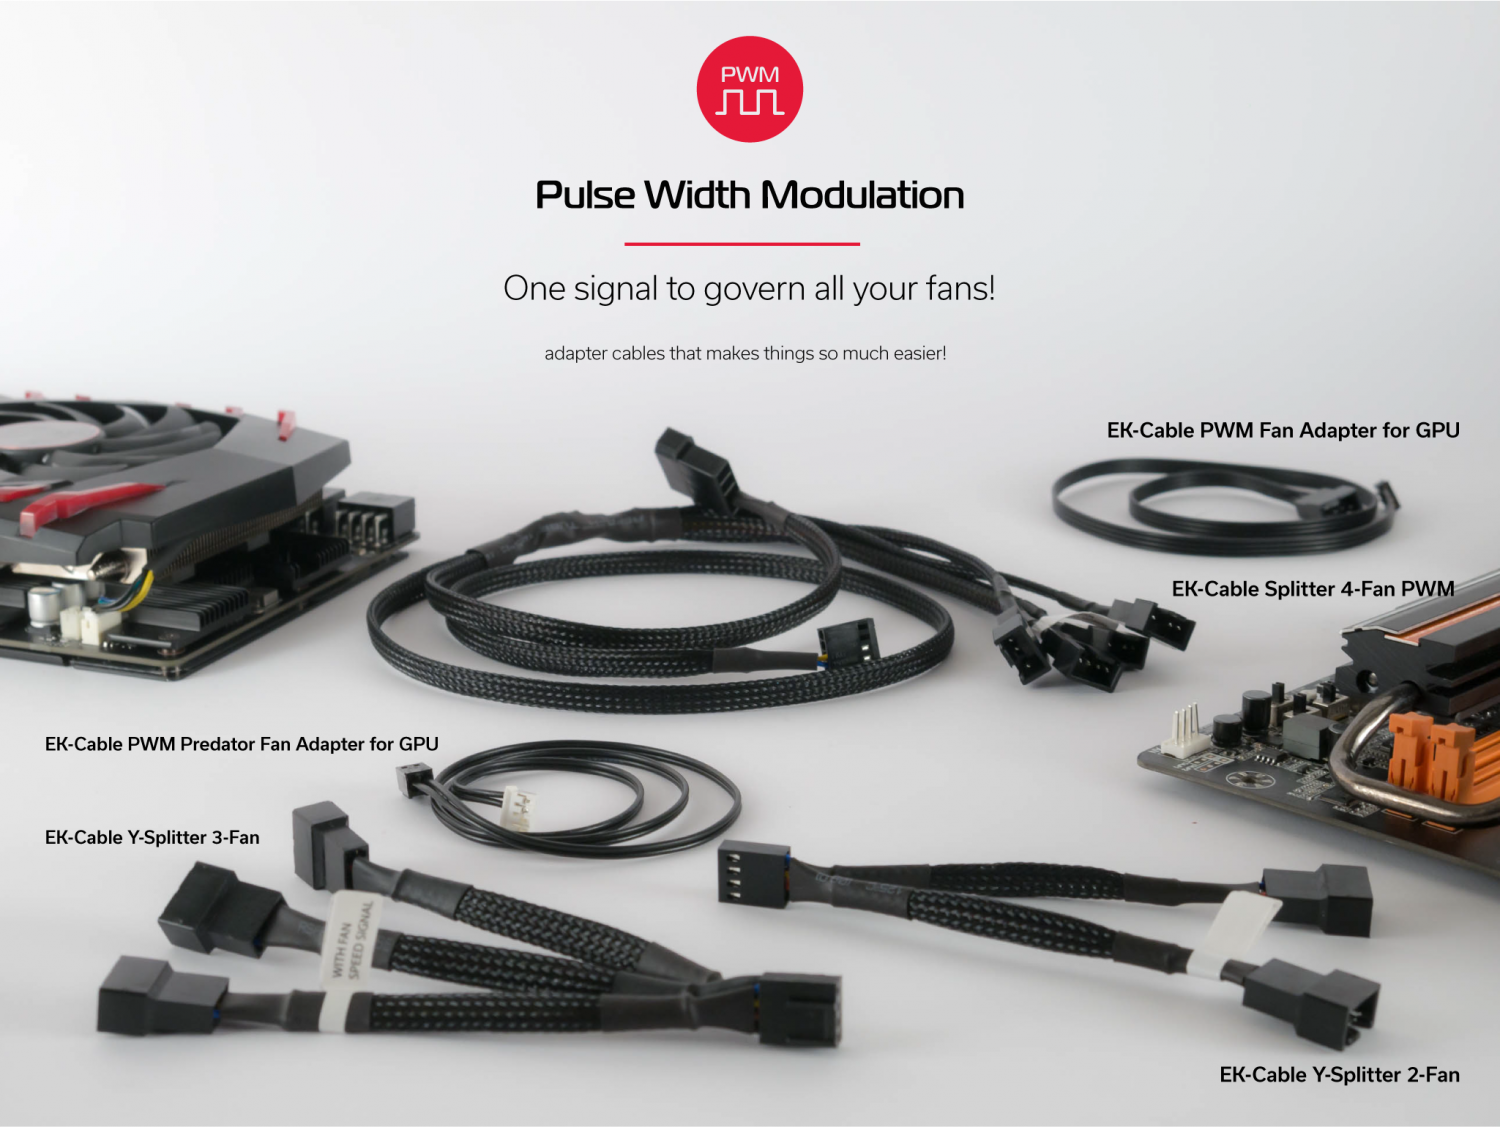 Useful Pwm Cables Fan Power 3pin To 2pin Y Cable Splitter Extension Wire On The Cool Thing About Regulation Is That You Can Use One Signal Govern All Of Your Fans So Why Not From A Gpu Do